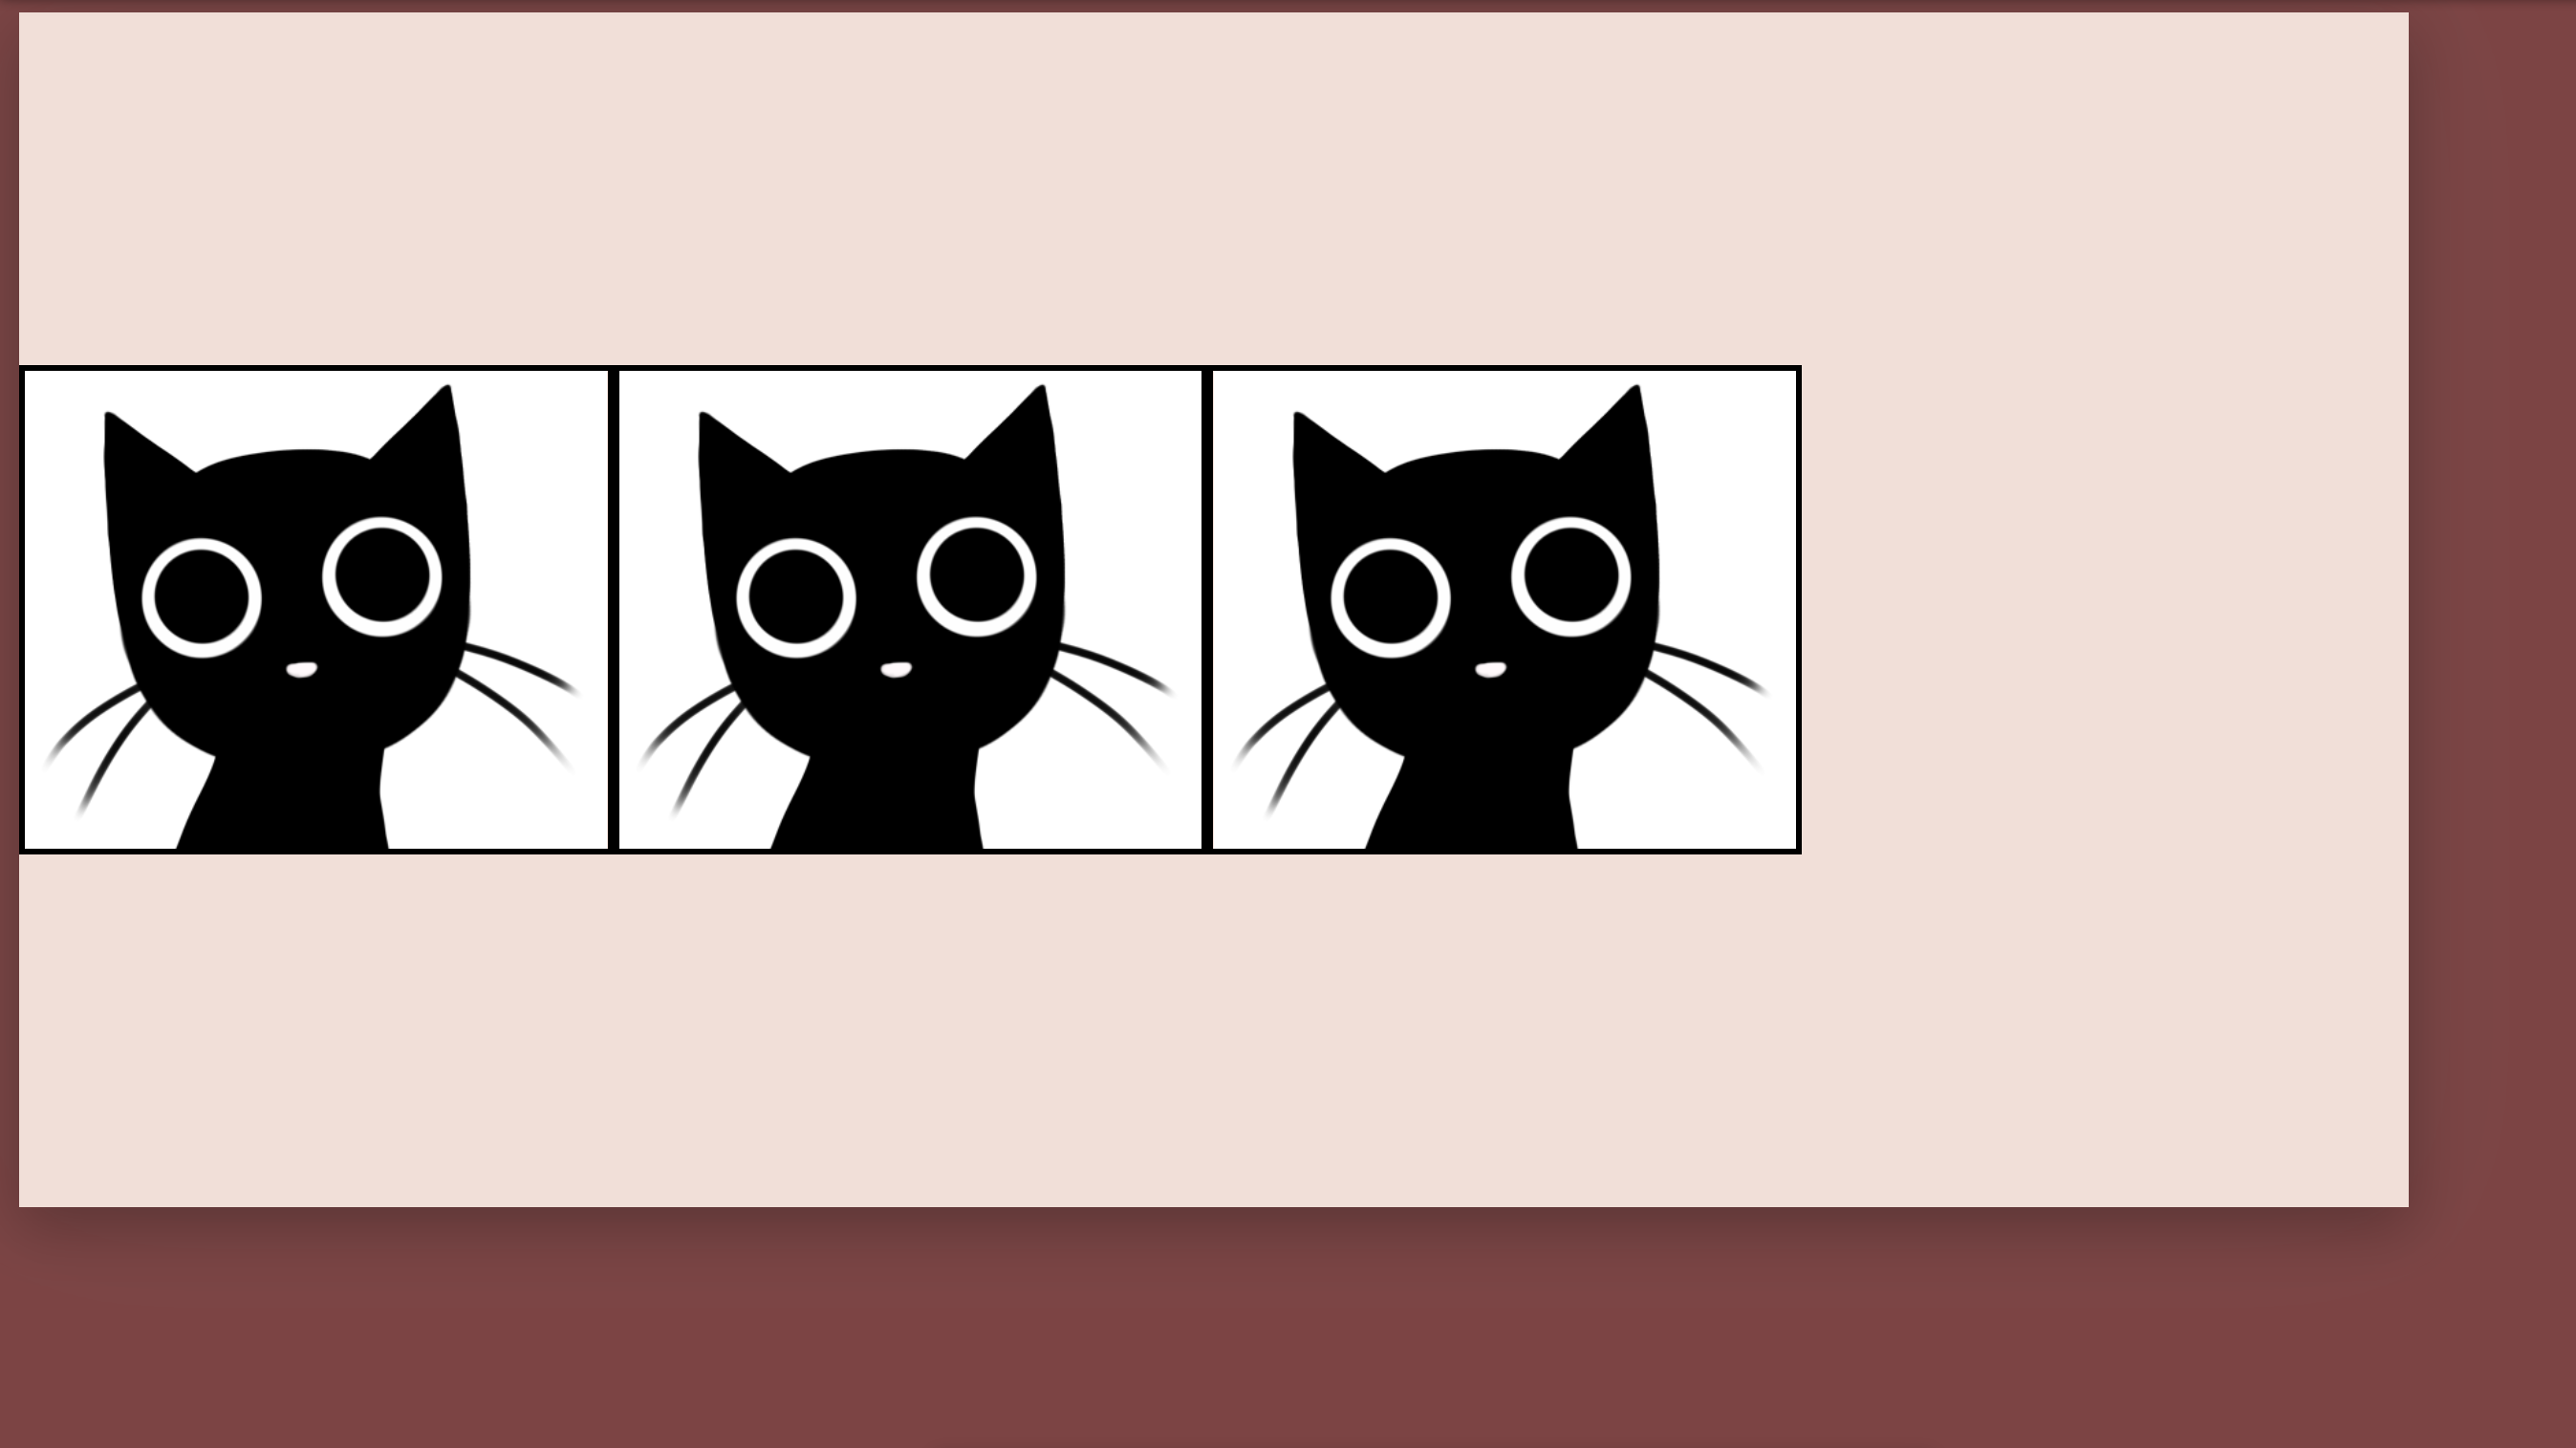 Cats that are aligned centrally on the y-axis